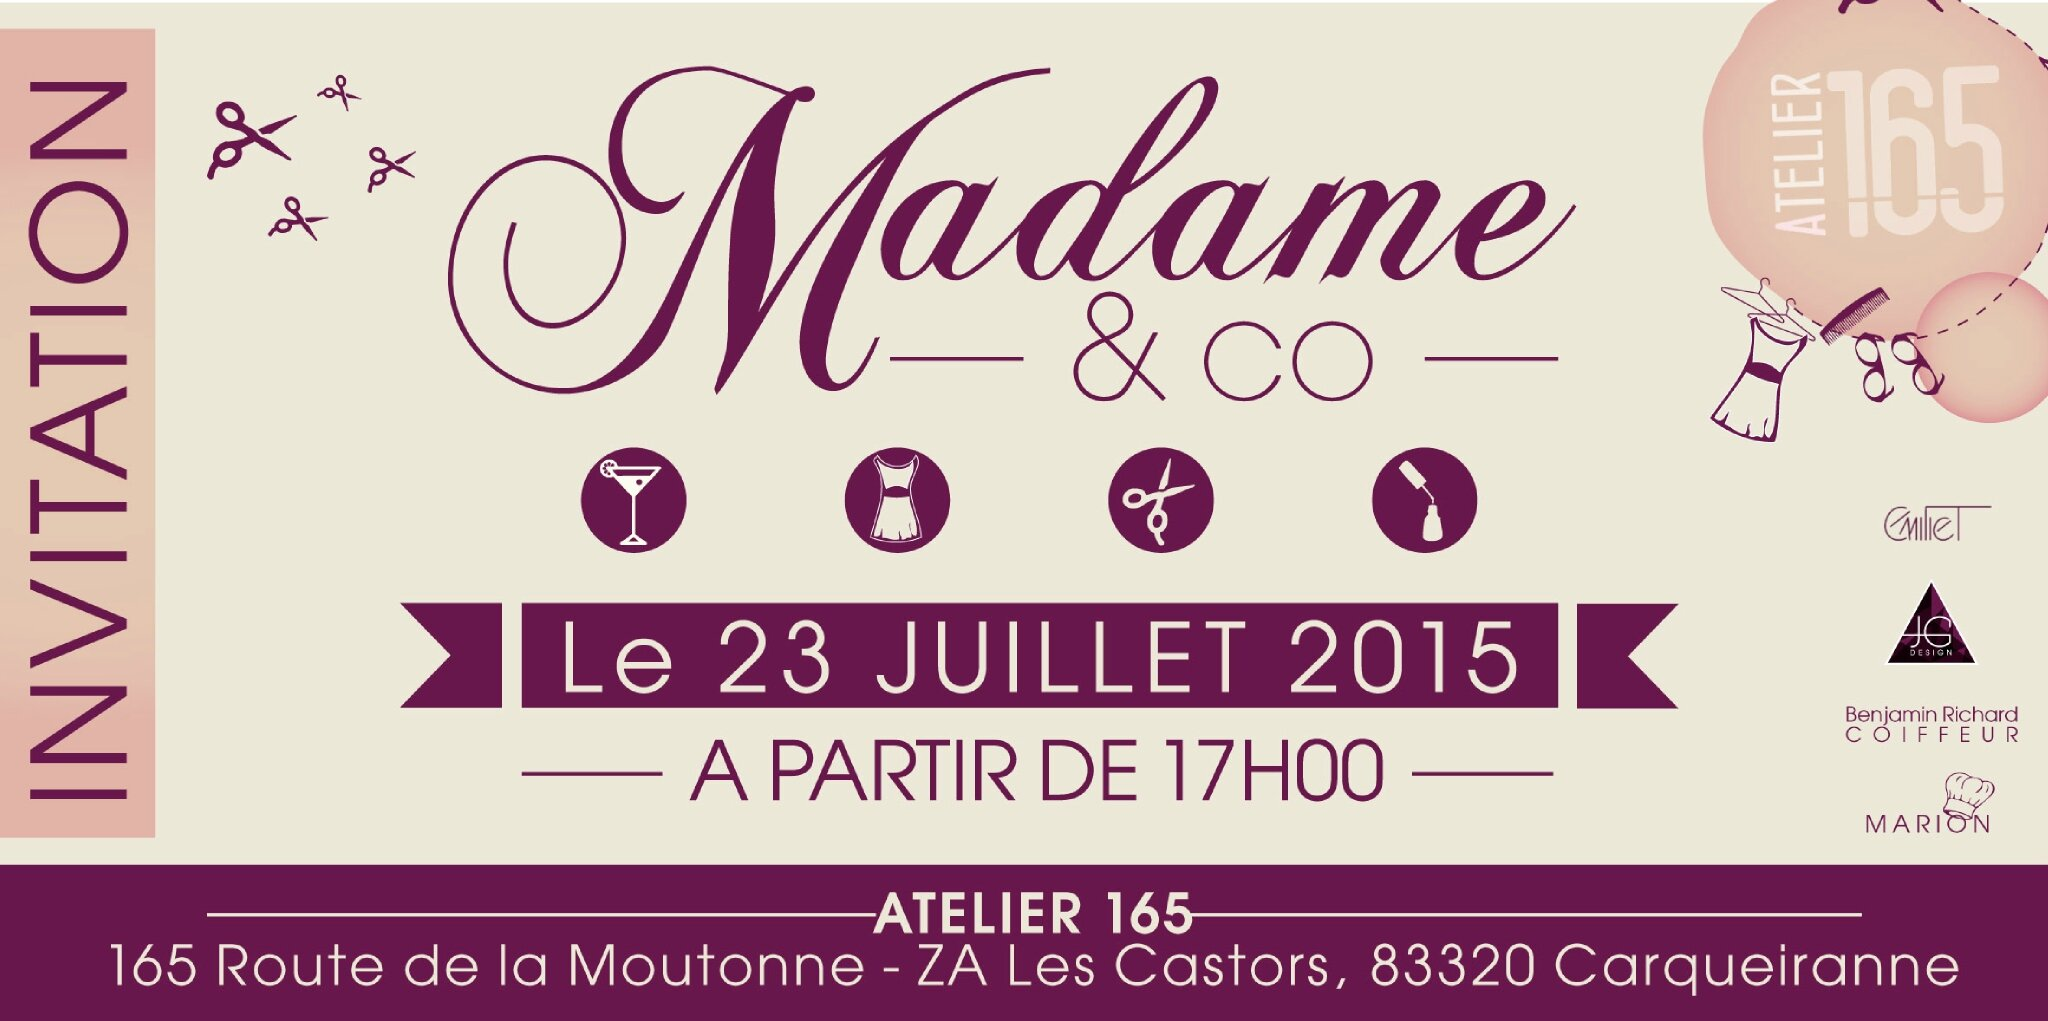 INVITATION_MADAME&CO